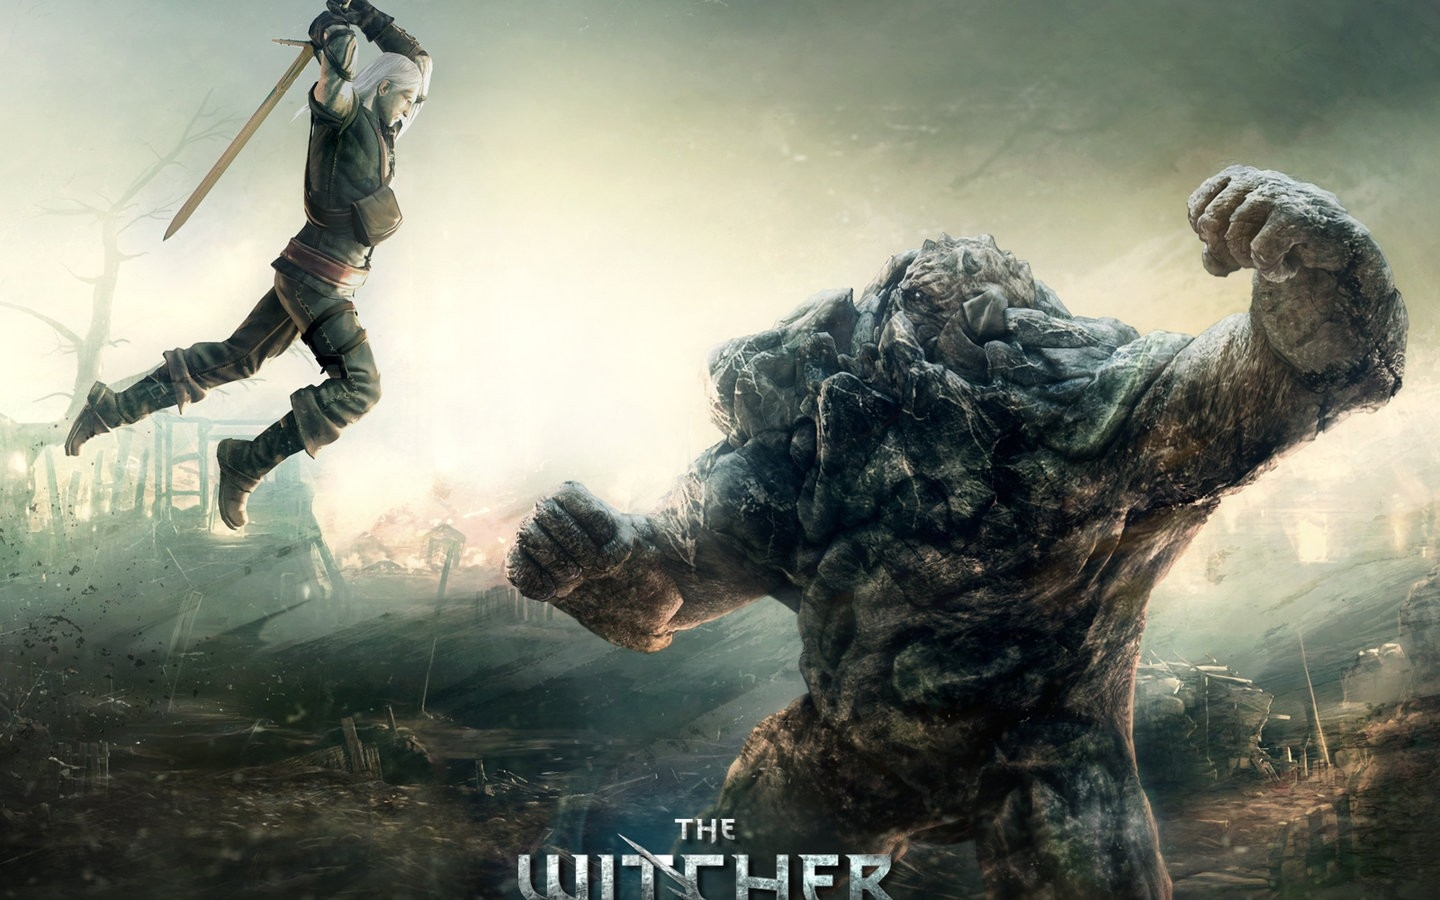 Mecha Girls Wallpaper Duel Golem Geralt Of Rivia The Witcher 2 1440x900